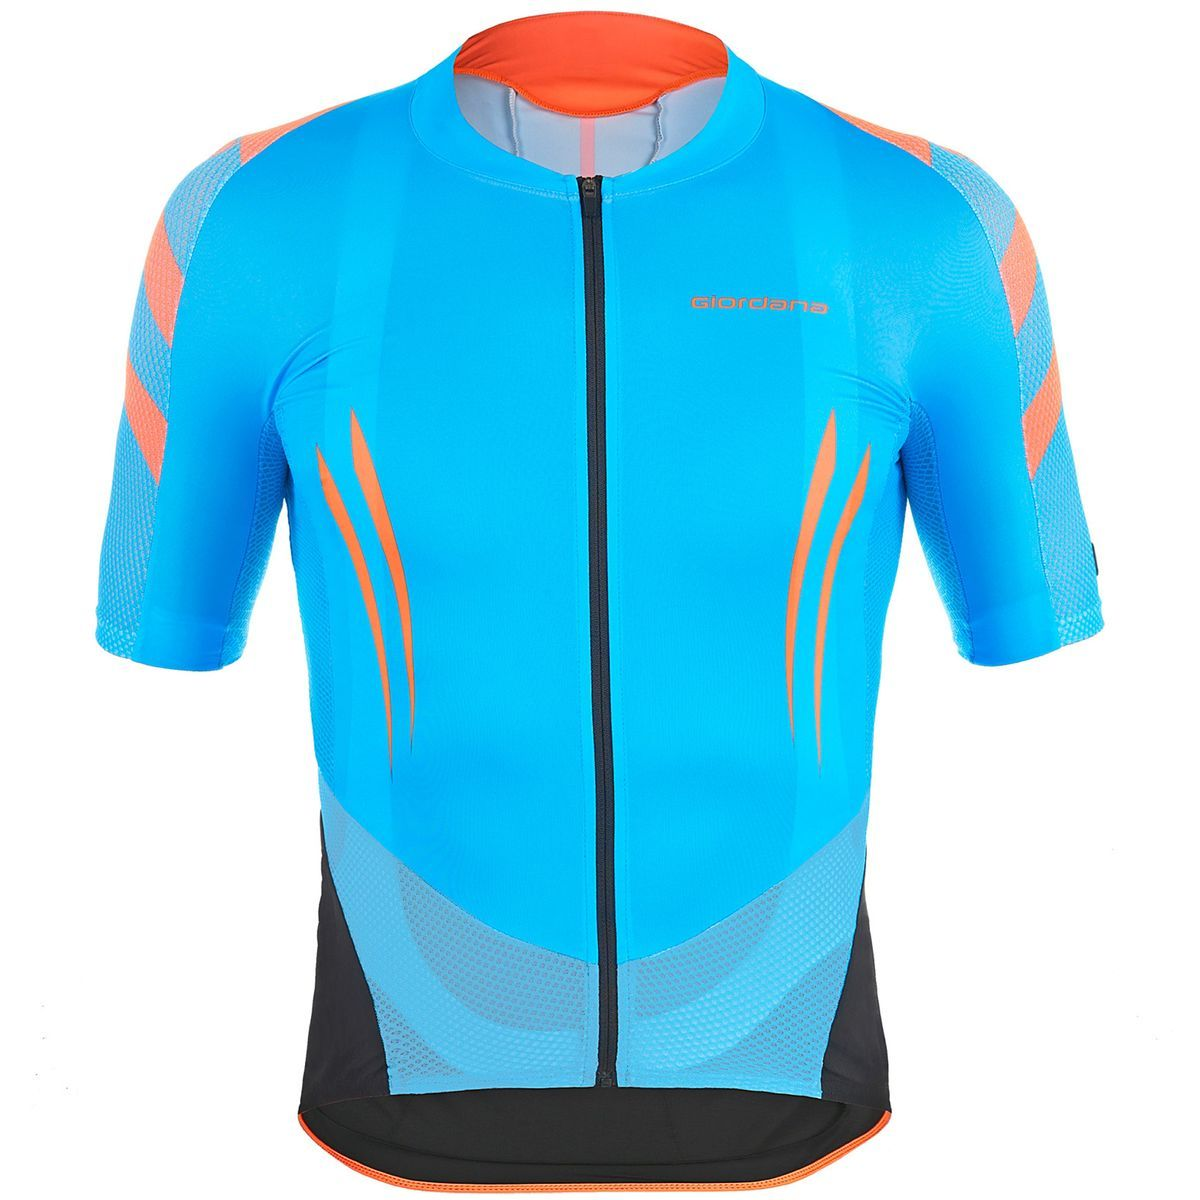 Giordana EXO System Jersey Short Sleeve Men's (With